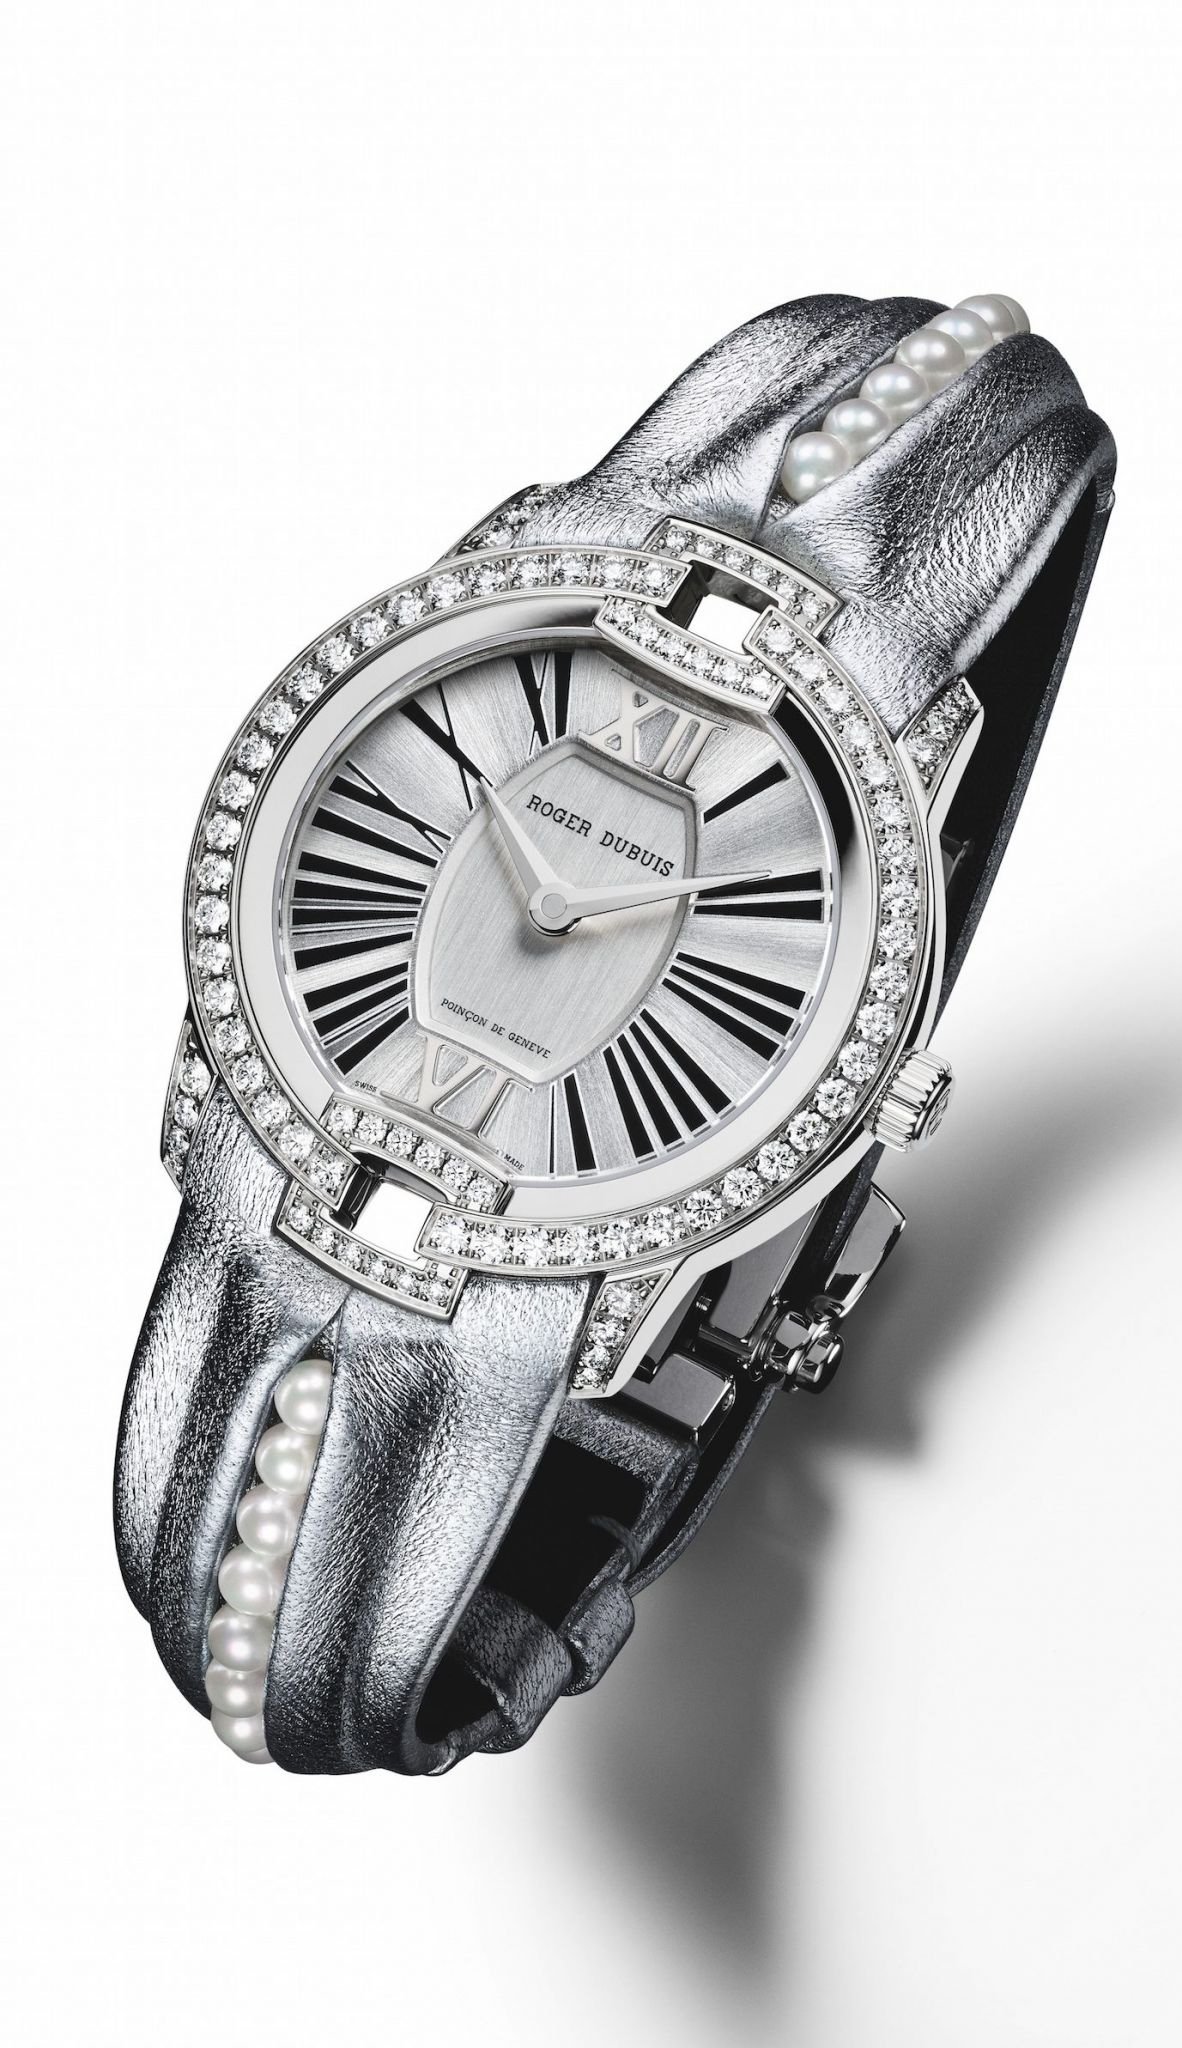 Roger Dubuis watch by Massaro